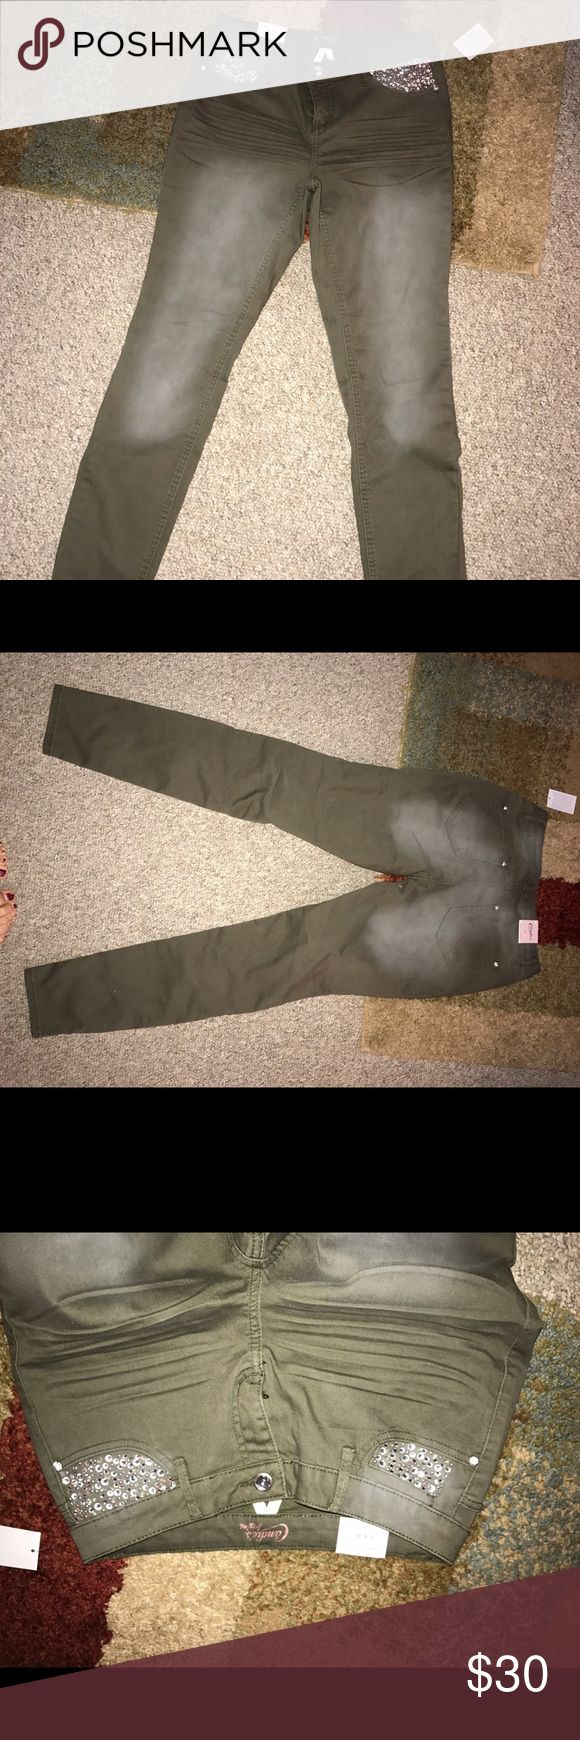 olive skinny jeans olive skinny jeans and sparkly.  size 7 Candie's Jeans Skinny